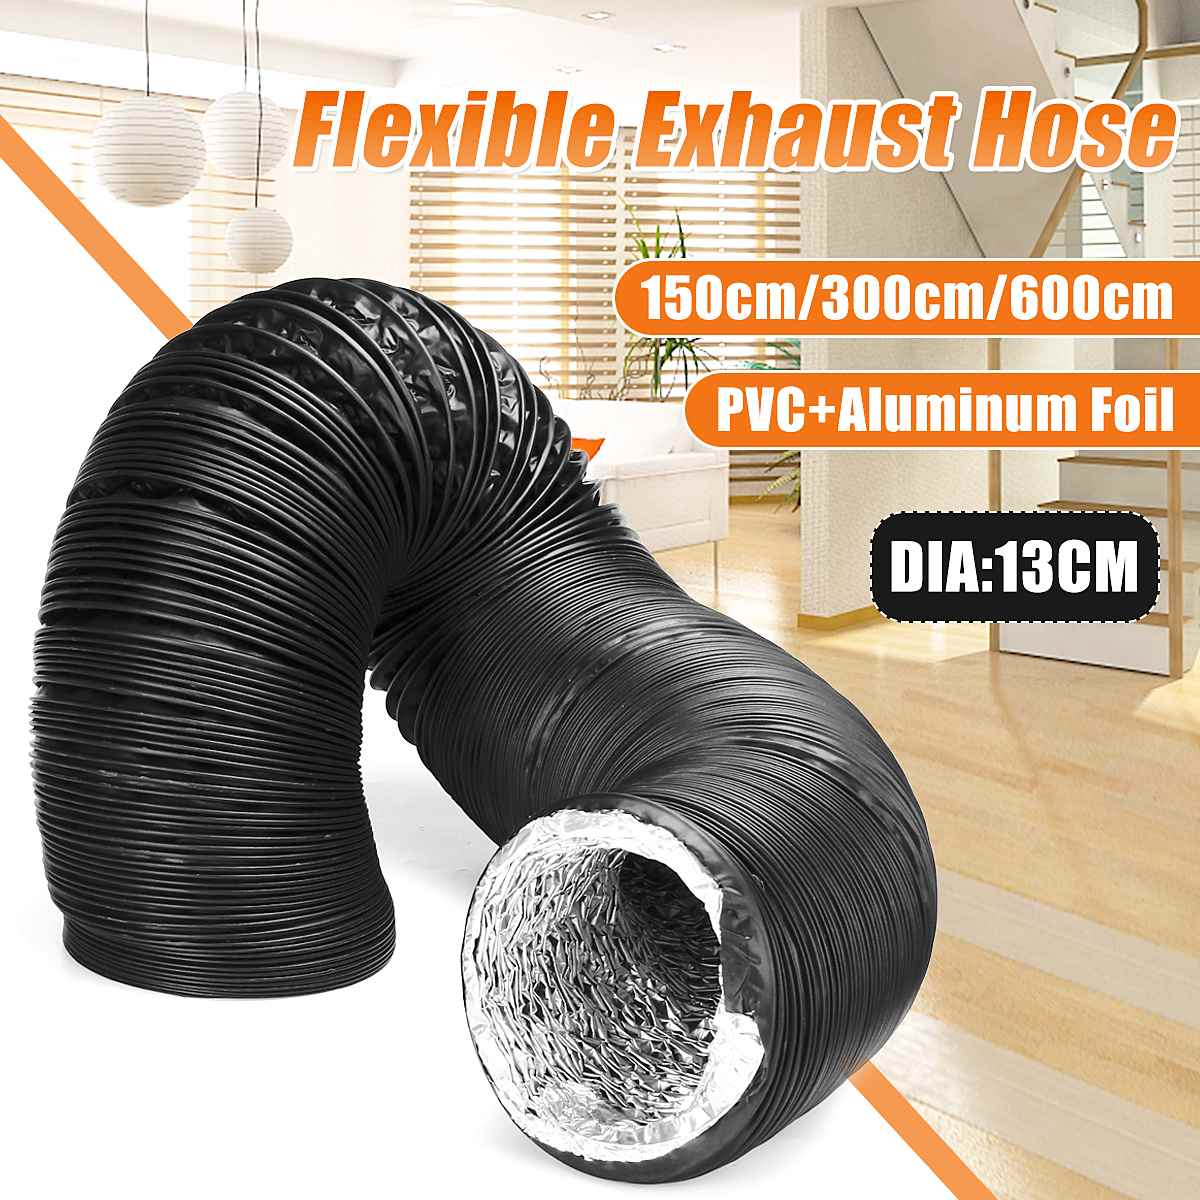 1.5/3/6M Dia.130mm Exhaust Tube PVC Aluminum Air Ventilation Ventilador Extractor Flexible Pipe Hose Kitchen Accessories Tools